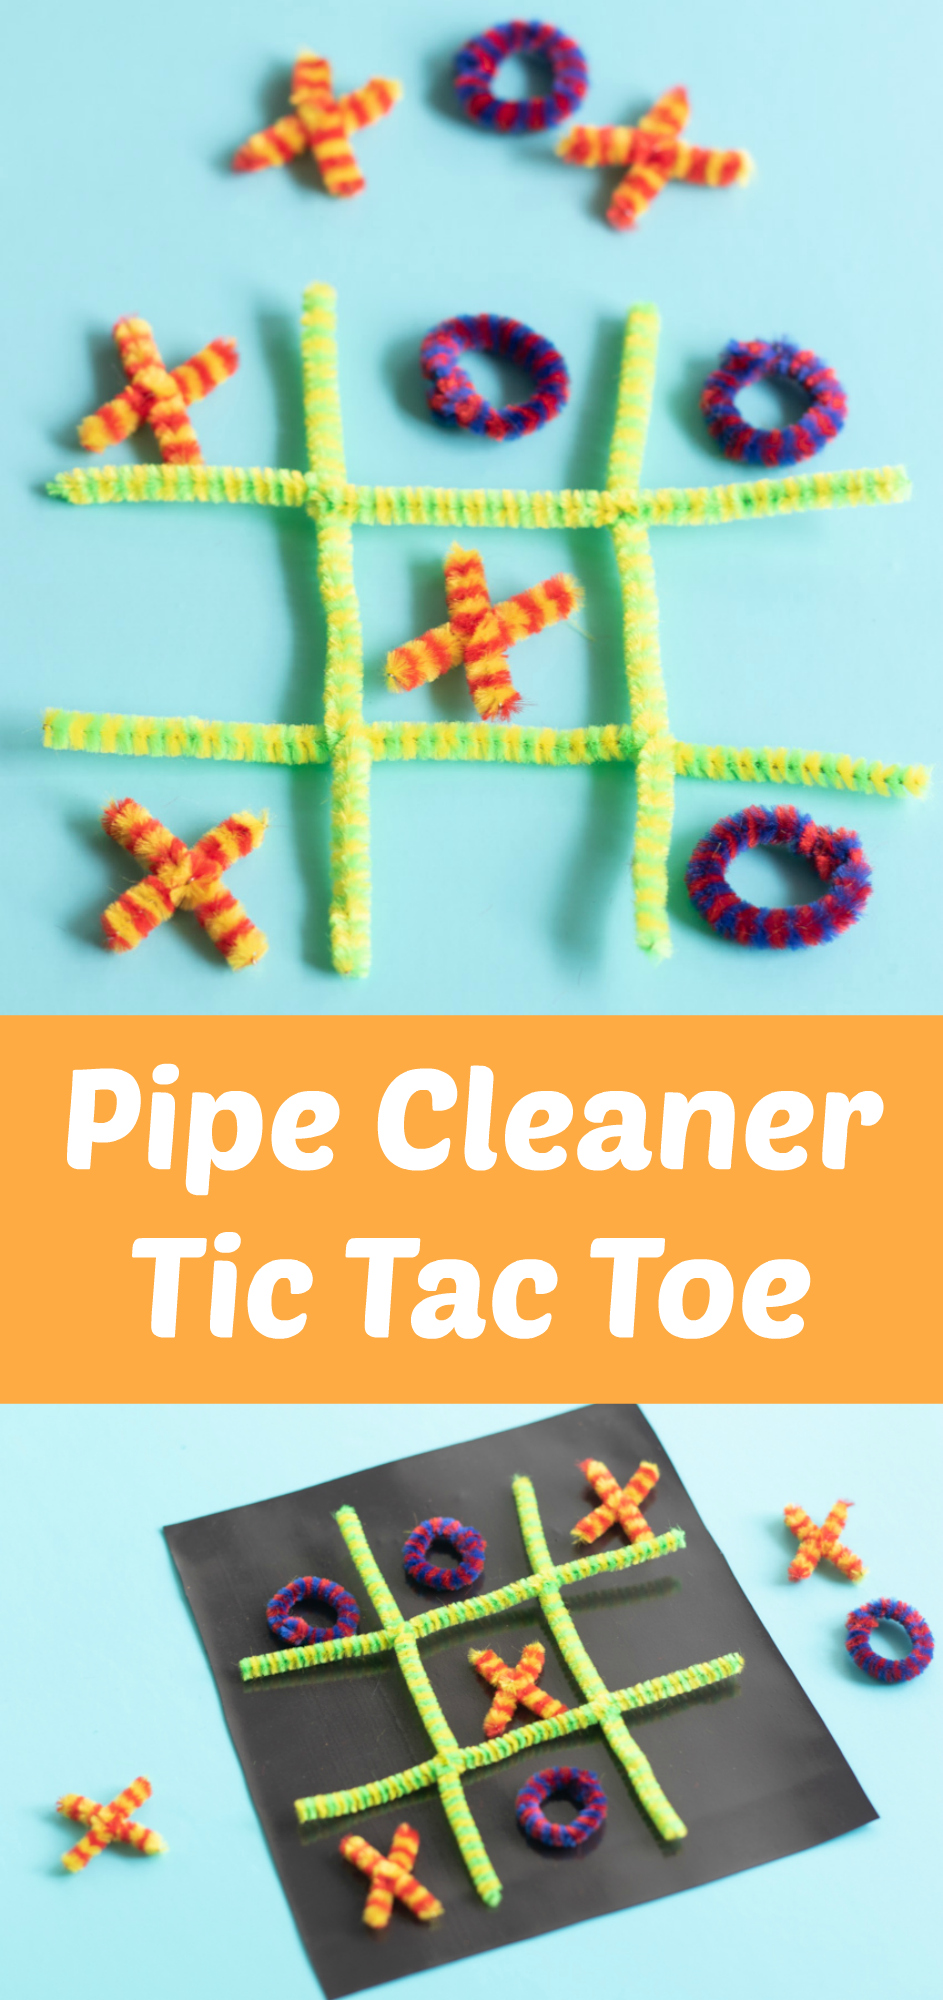 DIY Pipe Cleaner Tic Tac Toe Family Game on the Go